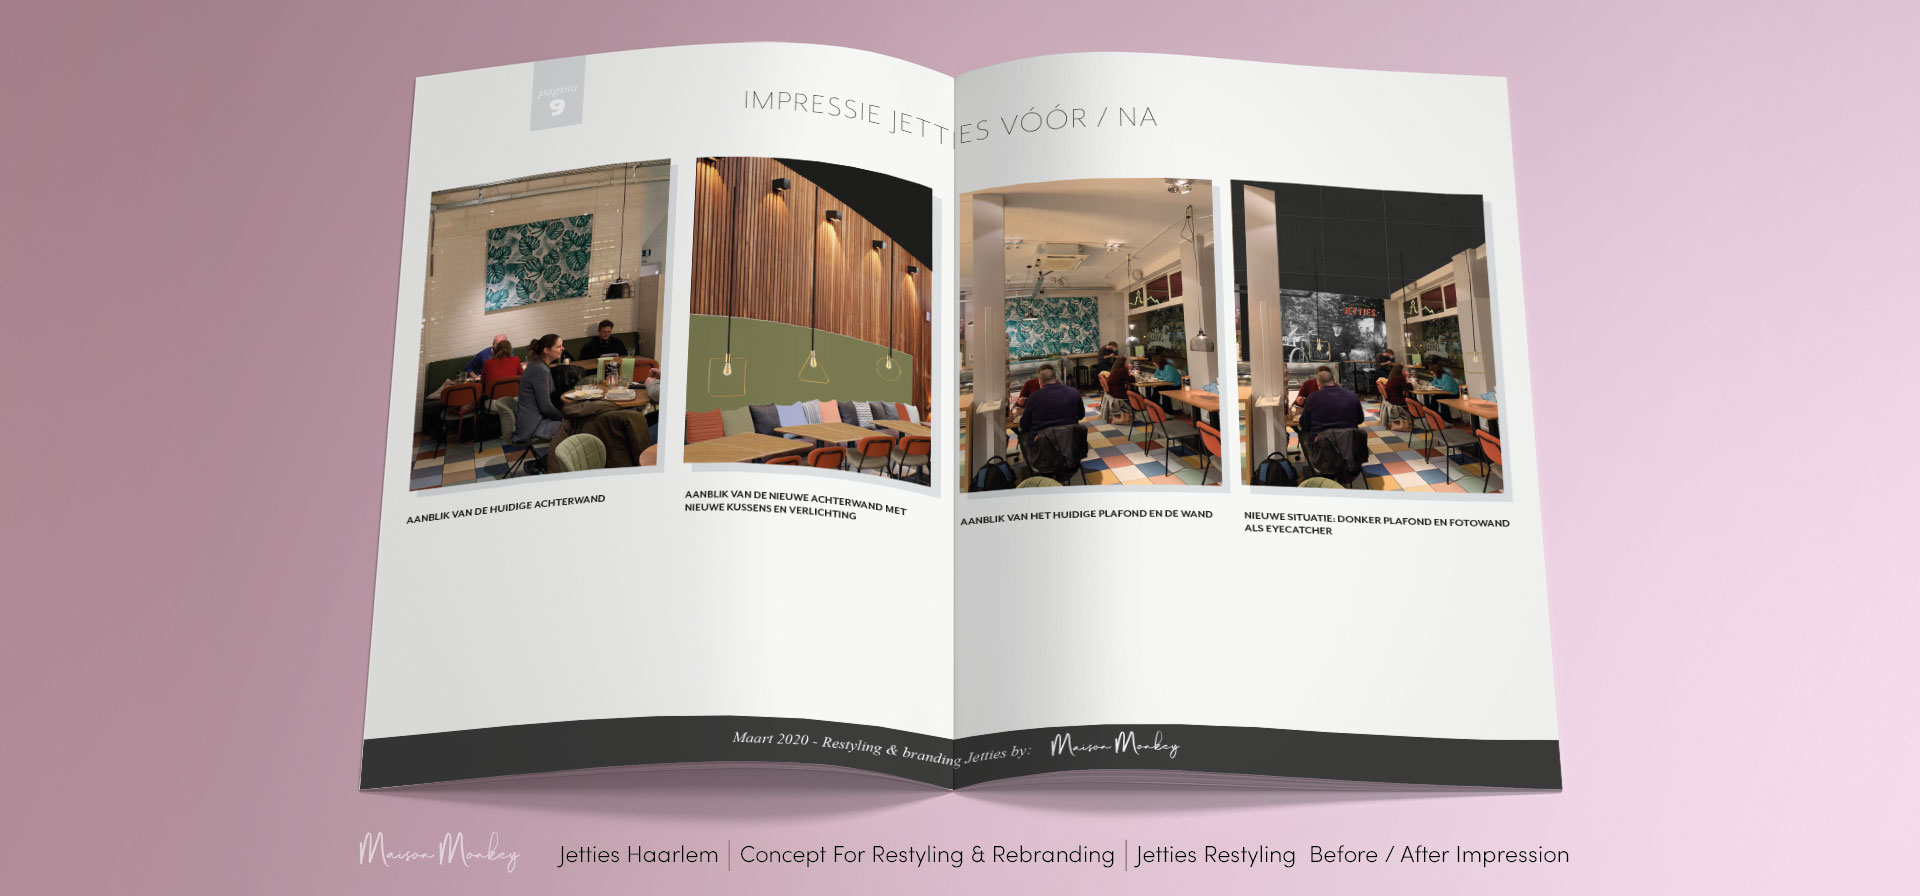 ? For all your Interior Design & Restyling Projects and Rebranding, call or mail Maison Monkey ?